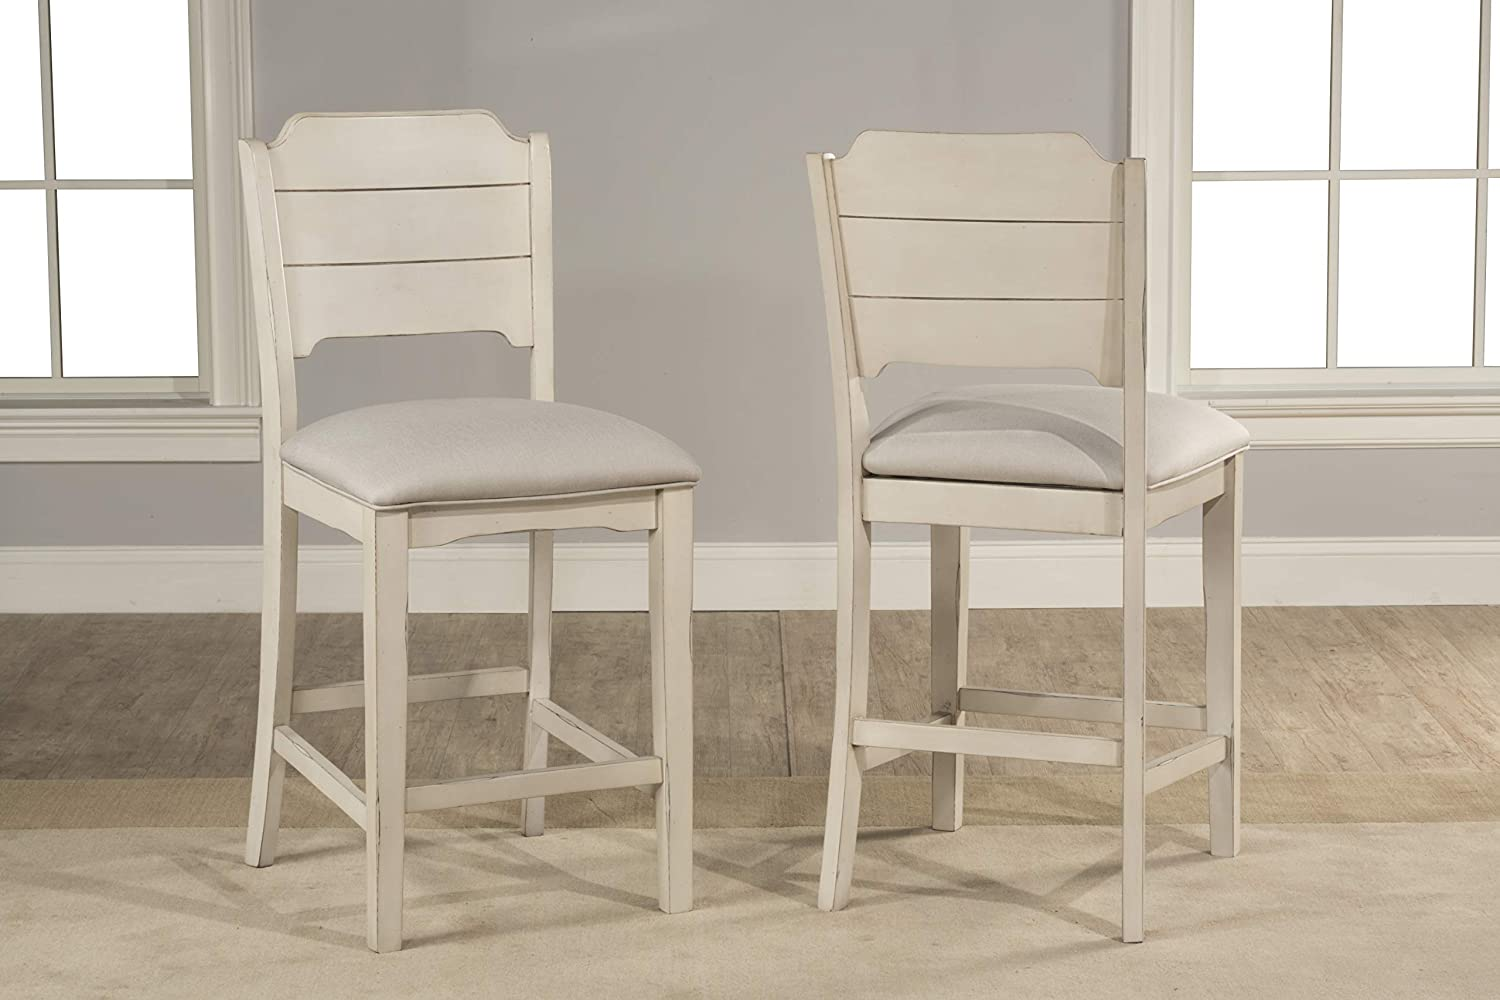 Hillsdale Furniture 4542-822 Hillsdale Clarion Open Back Height, Set of 2, Sea White Swivel Counter Stool